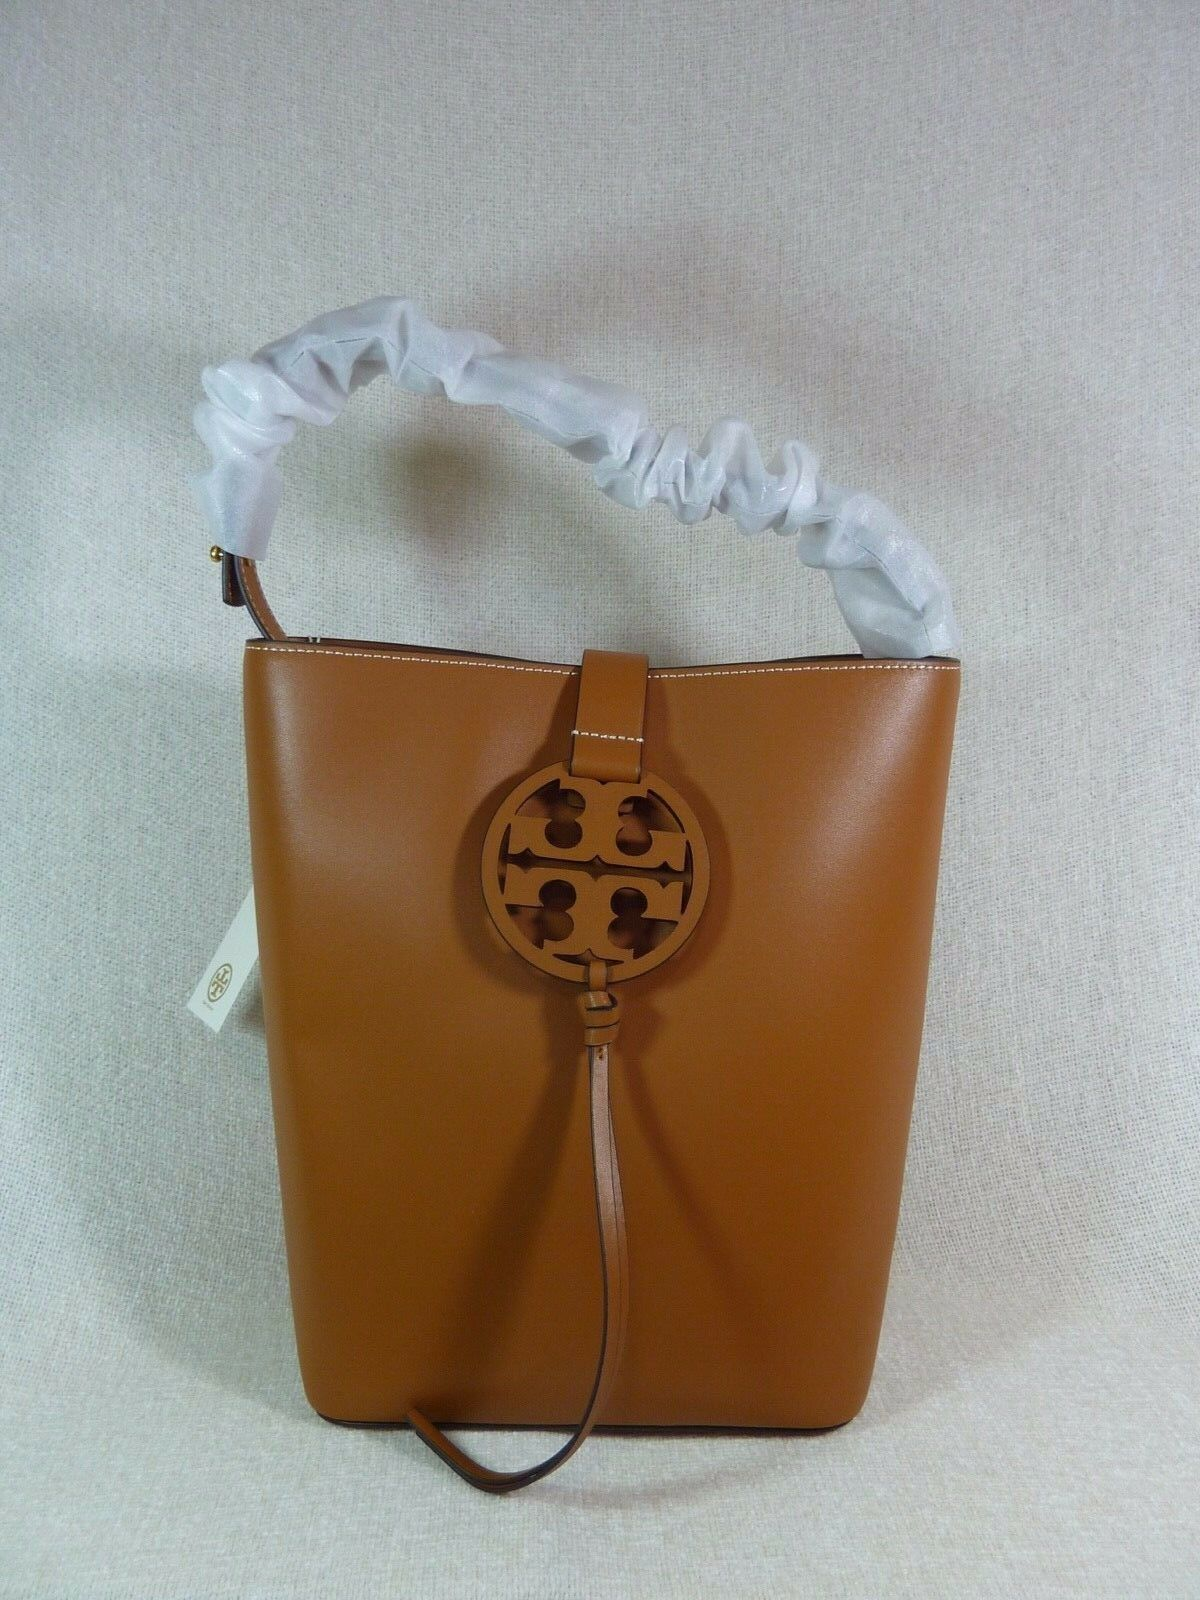 NWT Tory Burch Aged Camello Miller Hobo/Shoulder Tote - Minor Imperfection image 3